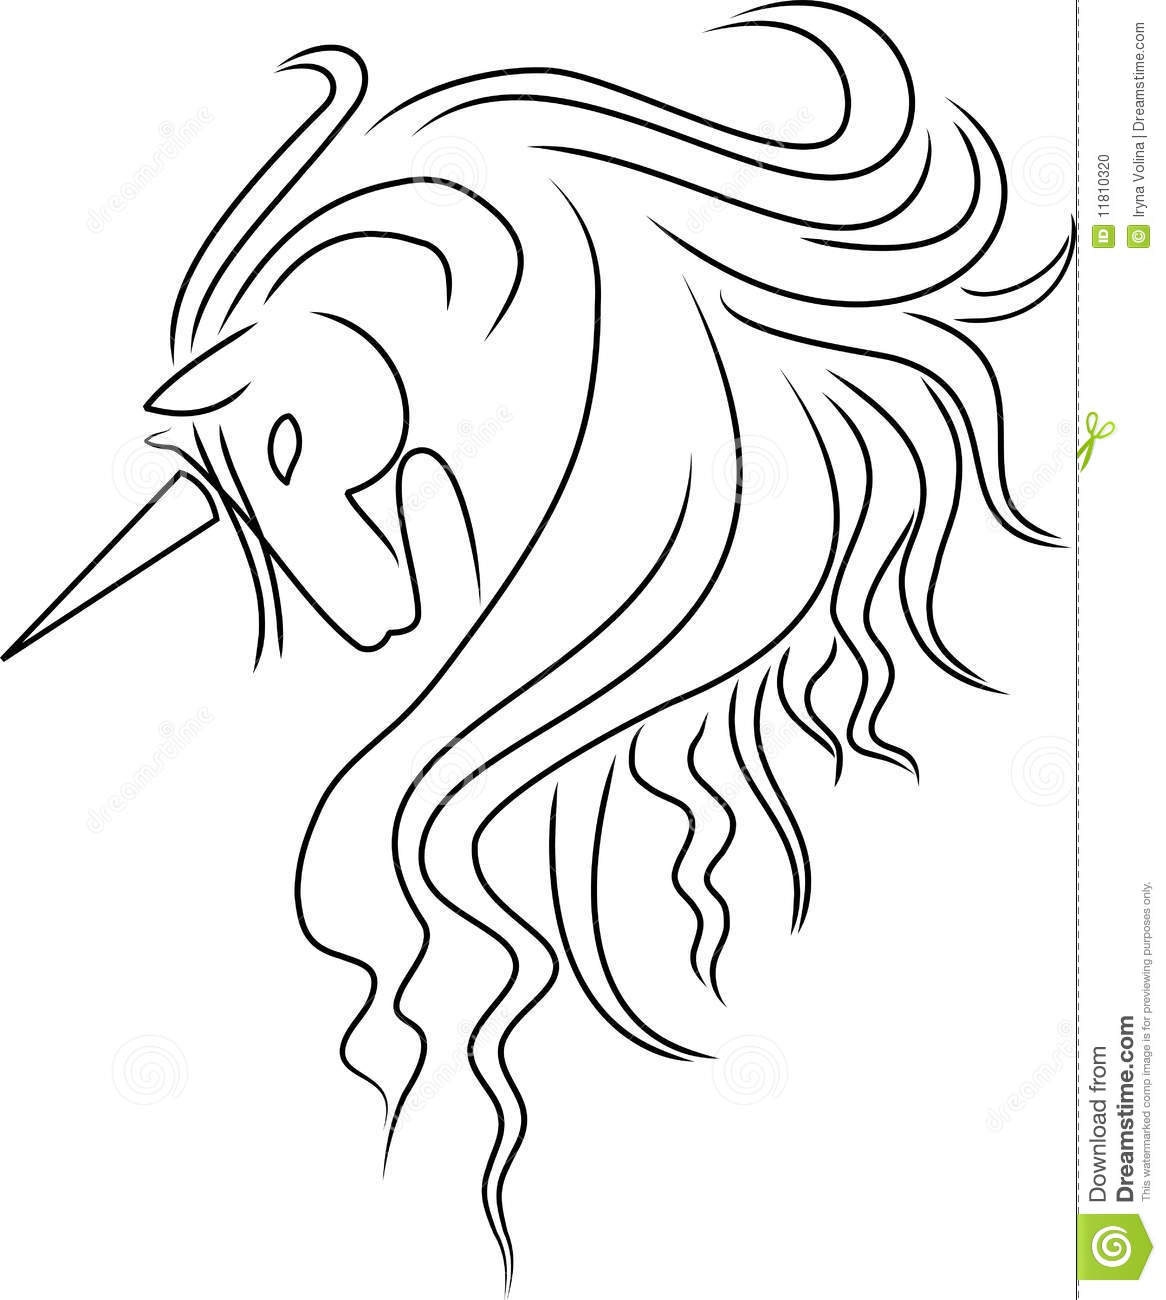 Unicorn Coloring Pages Simple